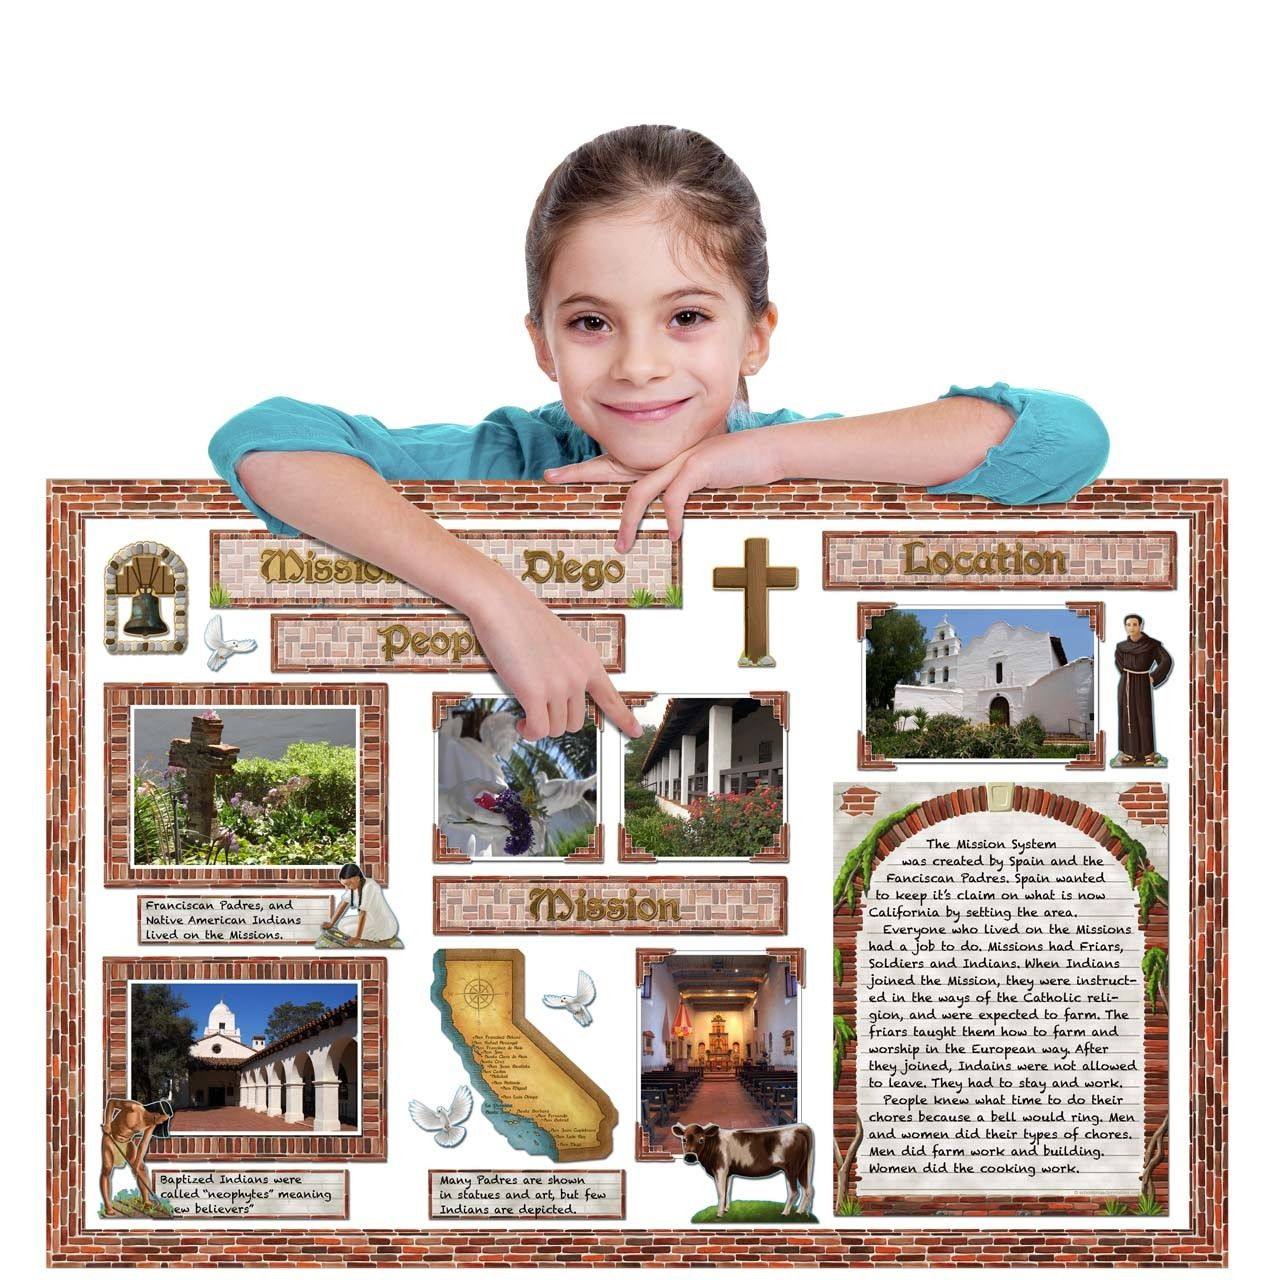 Poster design ideas for school projects - California Missions Design Your California Missions School Project Poster Using These